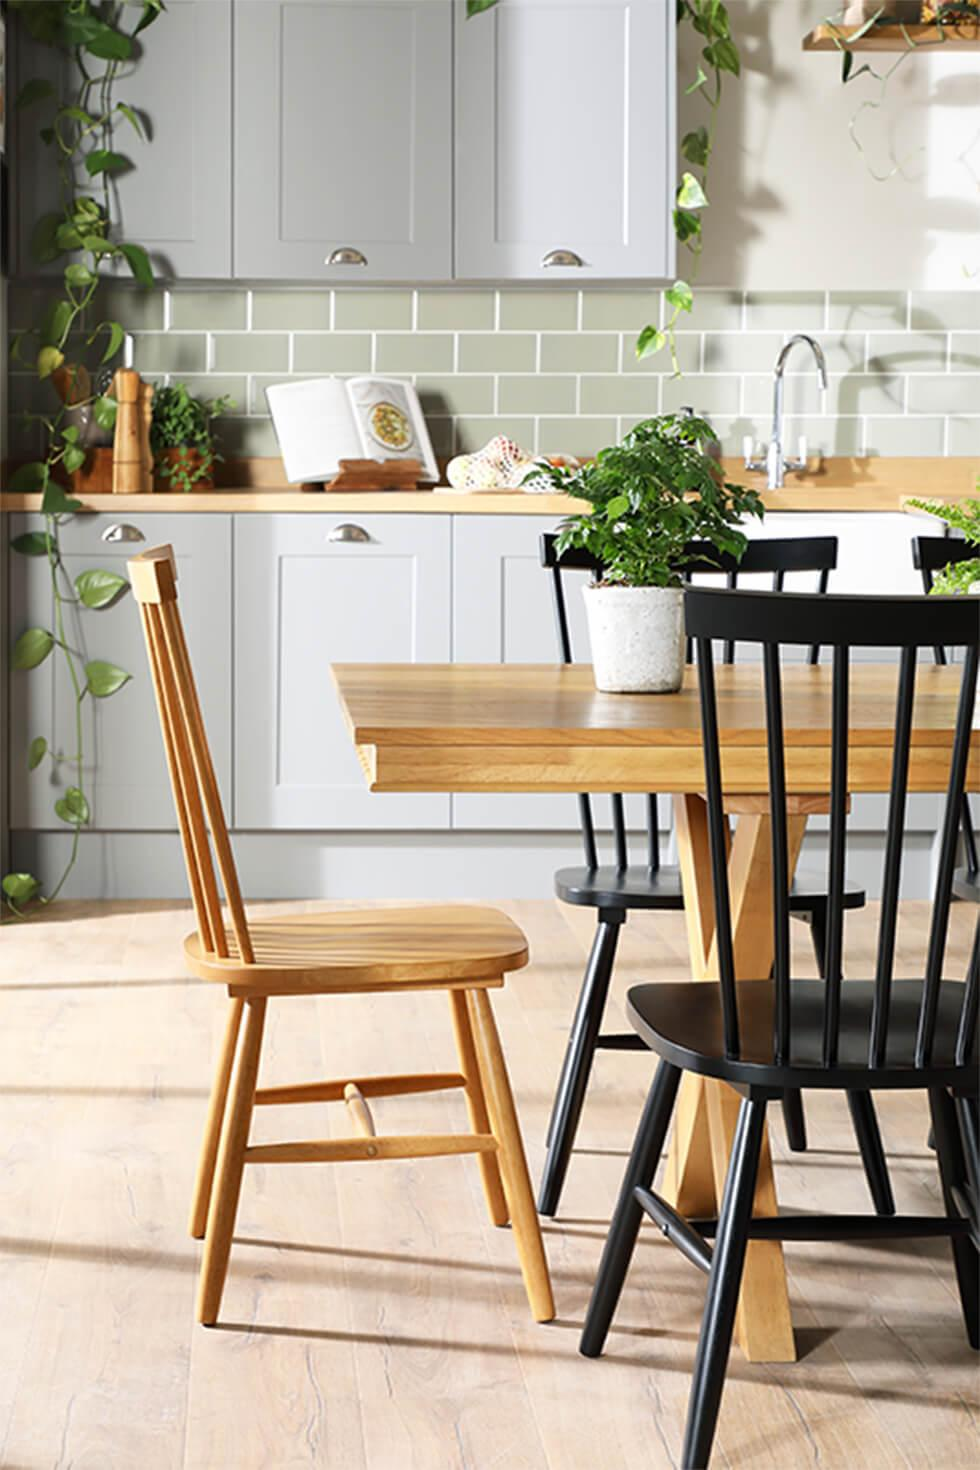 Wooden Windsor chair paired with matching table and black chairs